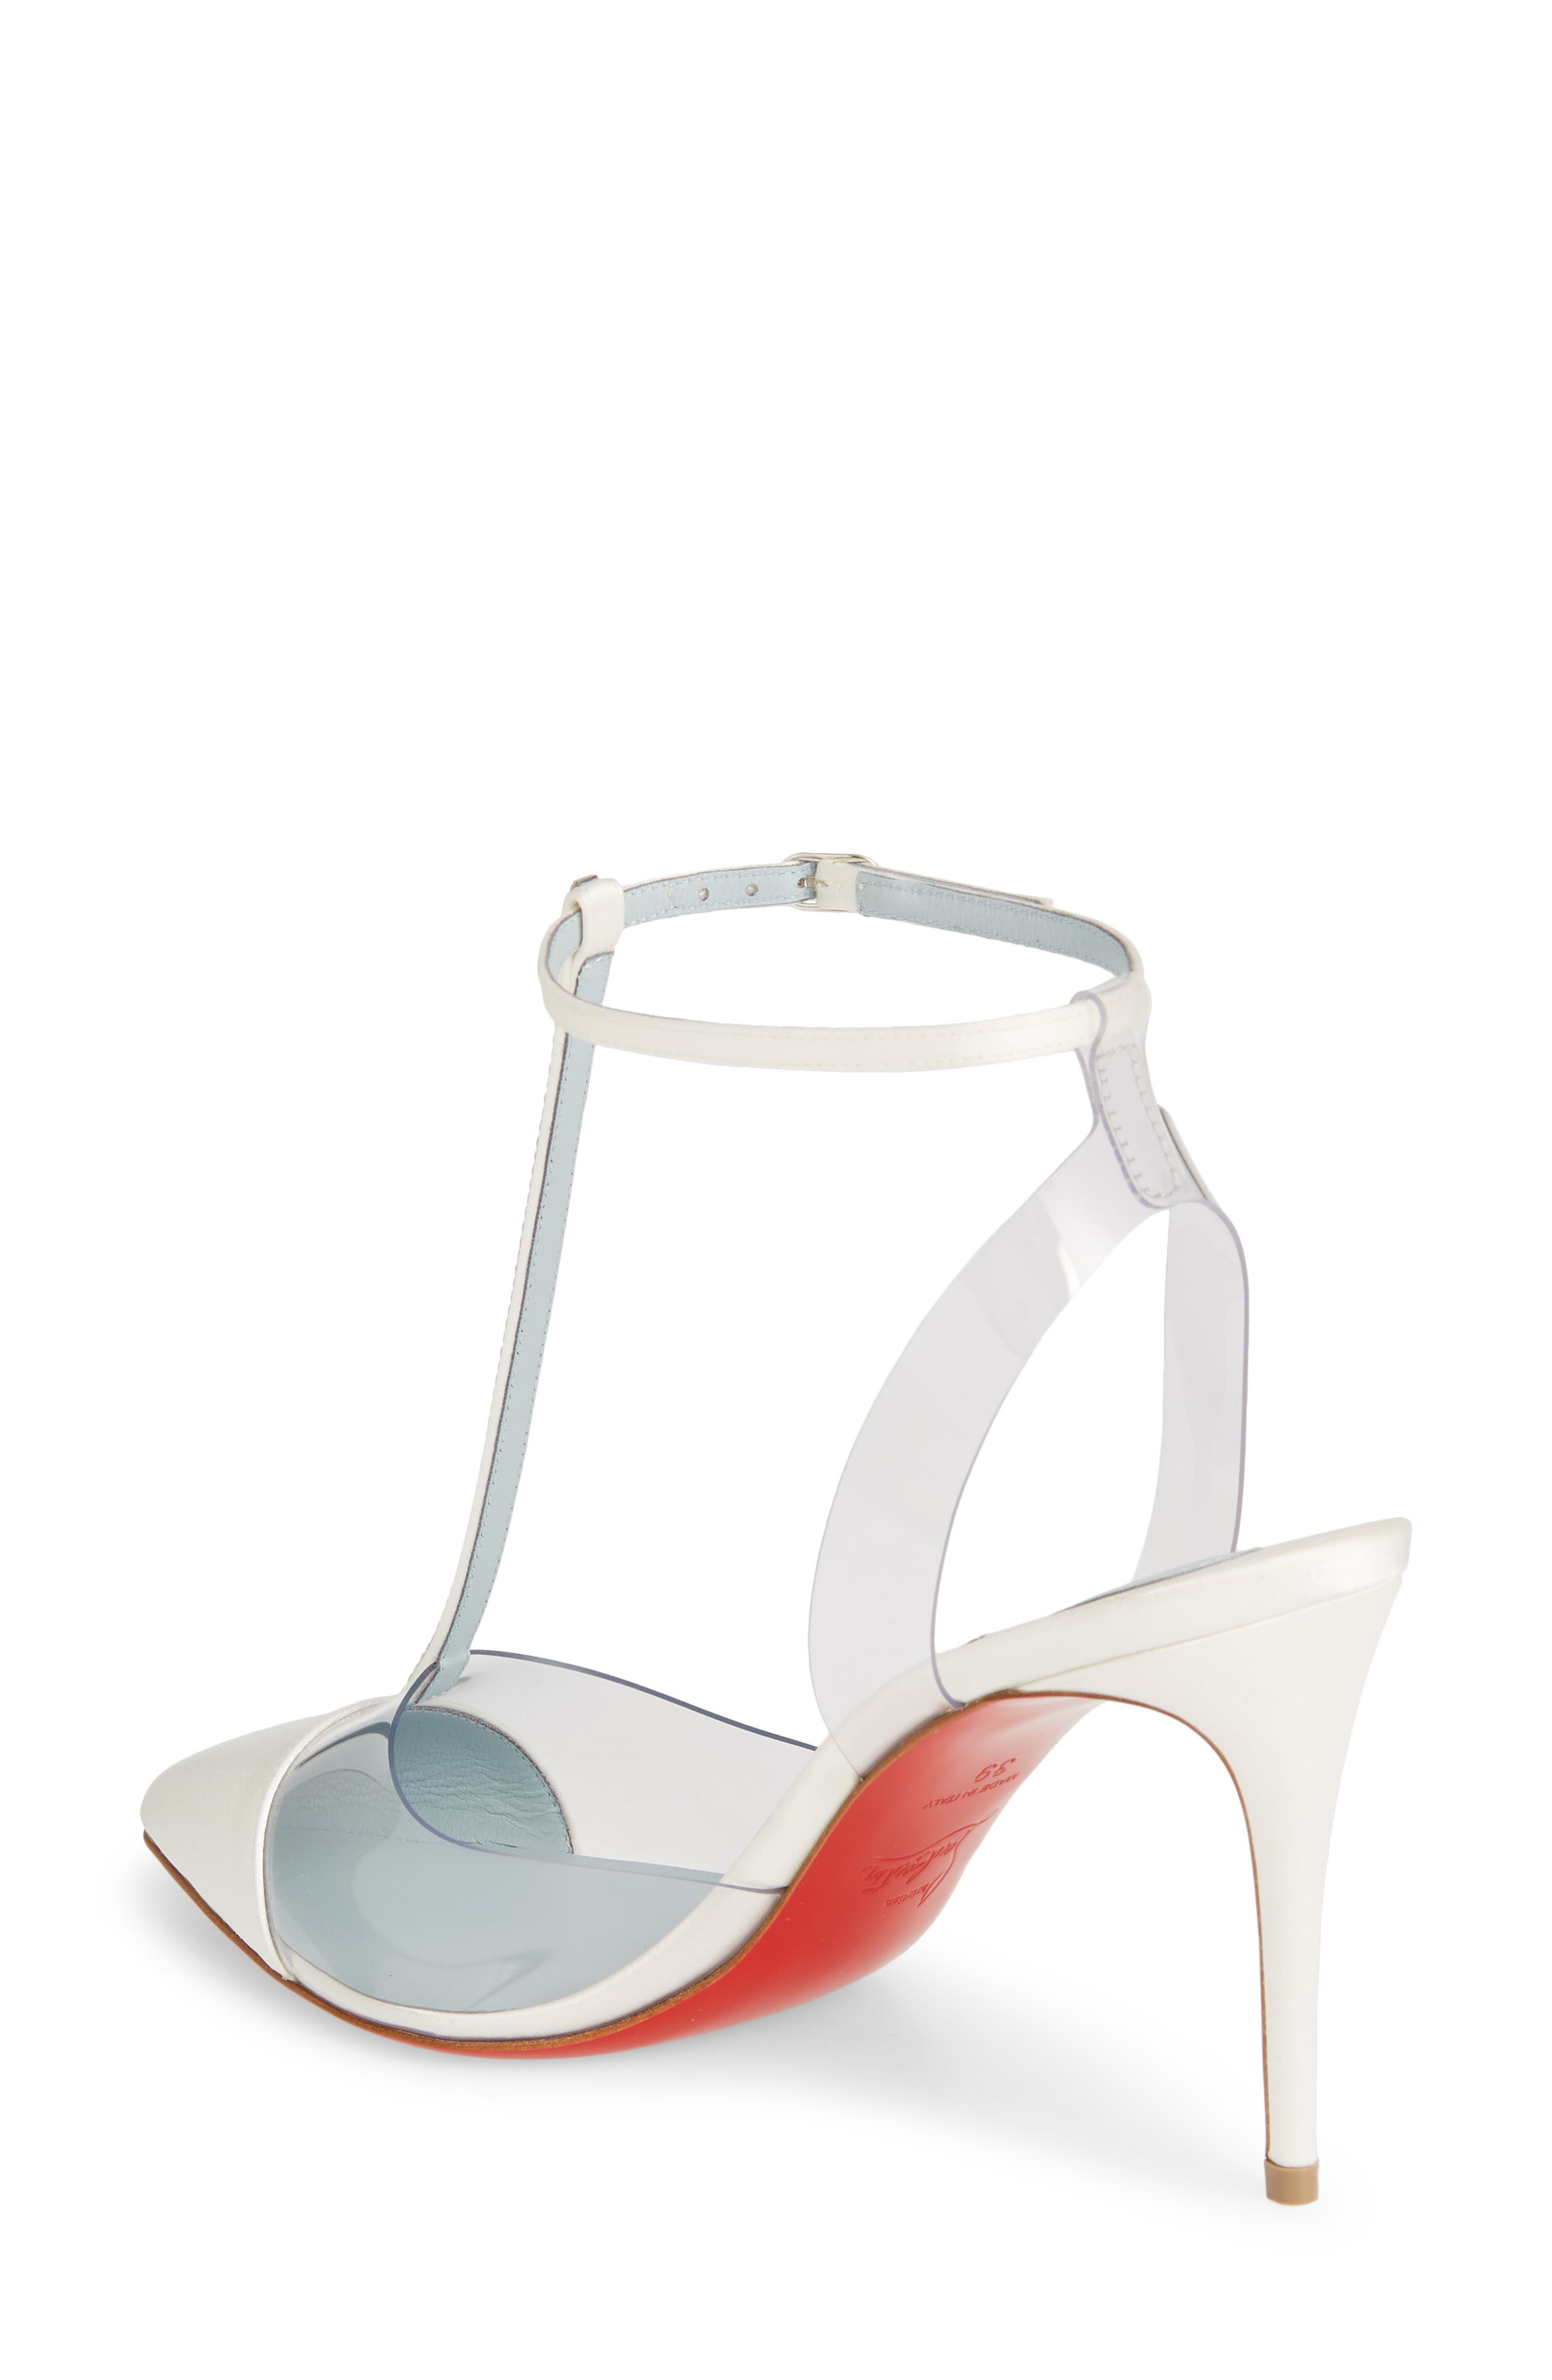 CHRISTIAN LOUBOUTIN,                             Nosy Jewel Clear Pump,                             Alternate thumbnail 2, color,                             OFF WHITE